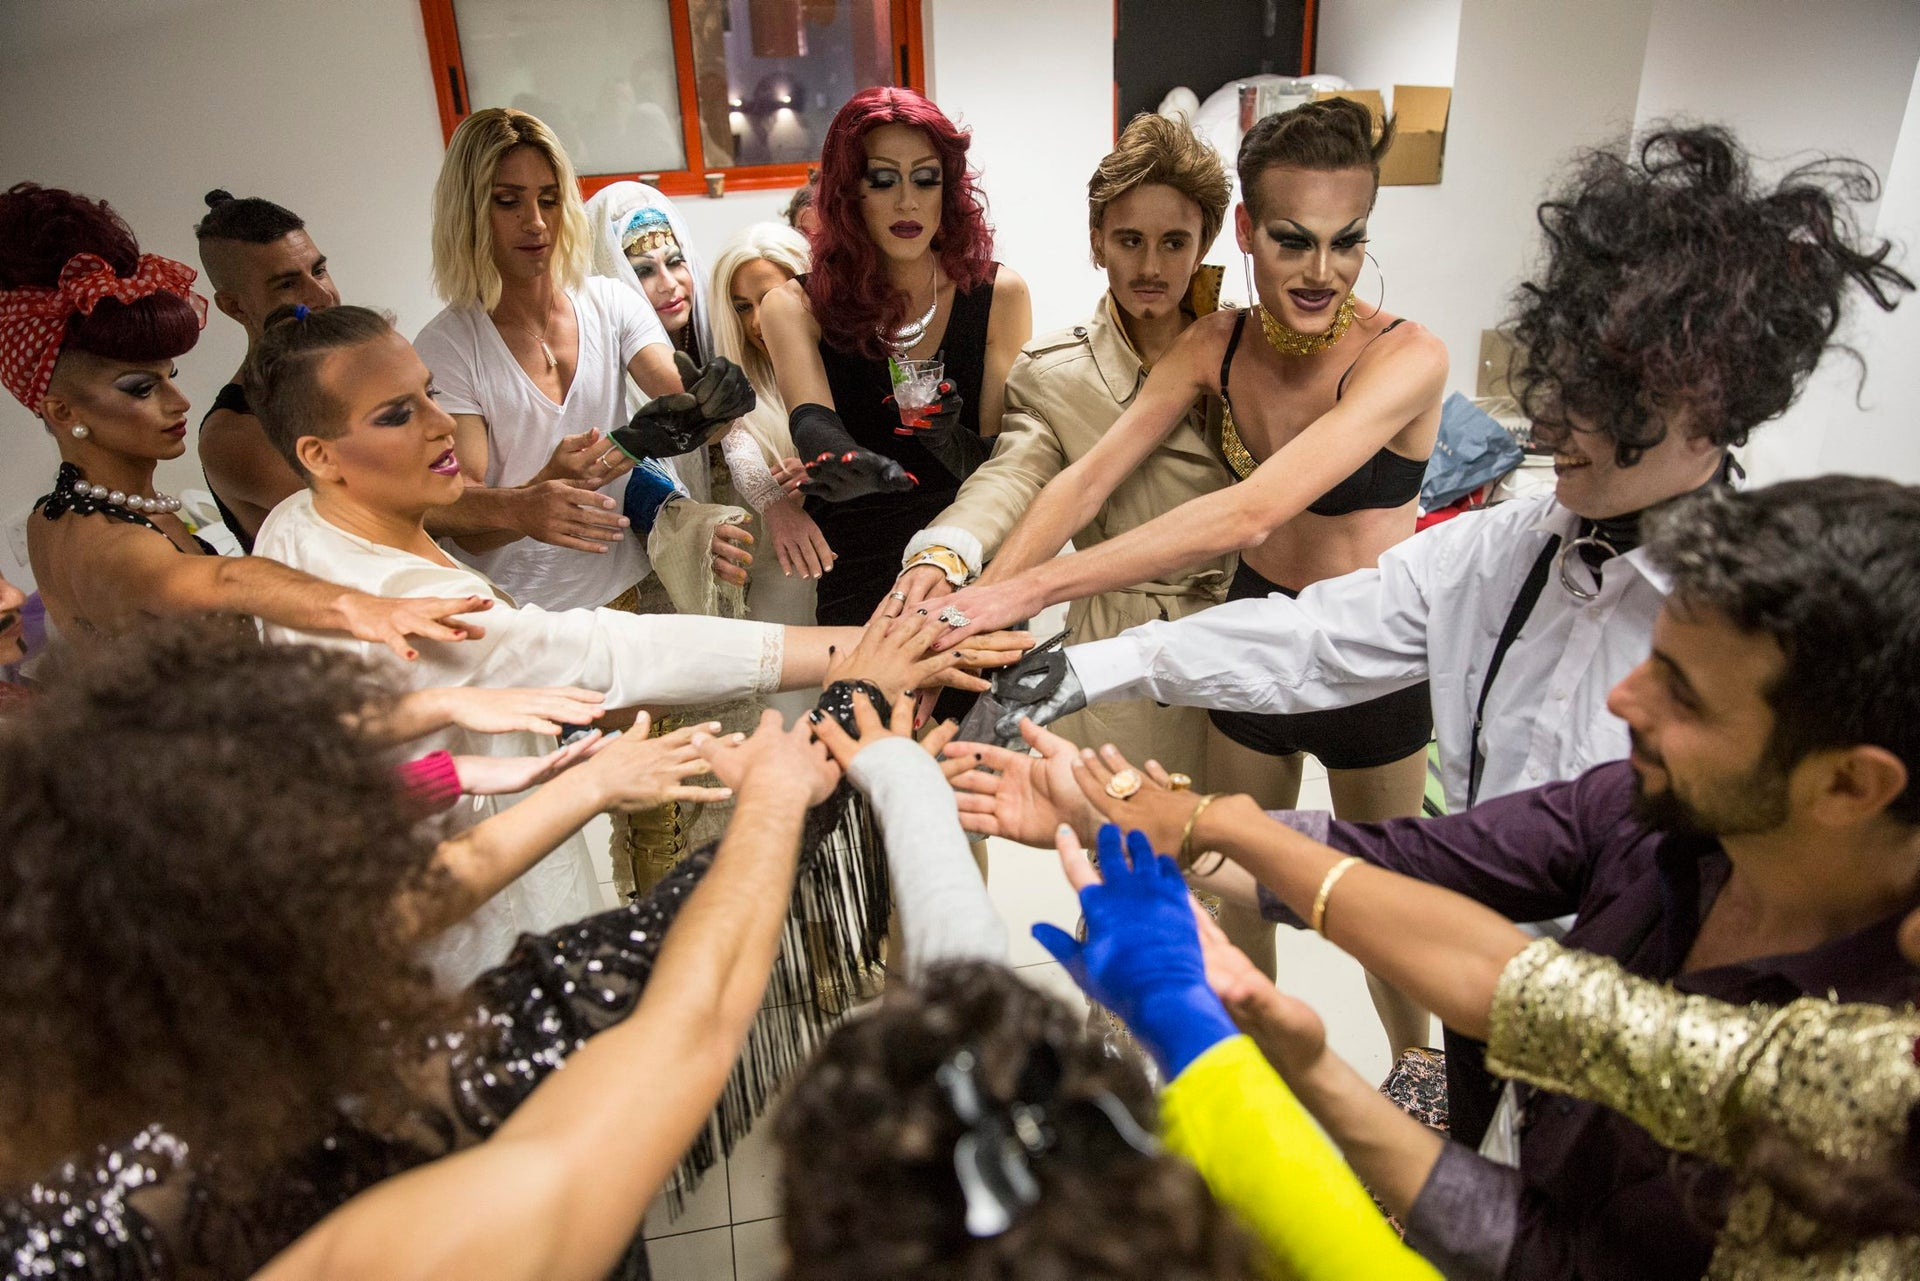 Contenders and hosts of Tel Aviv's drag competition, just before the start of the show.